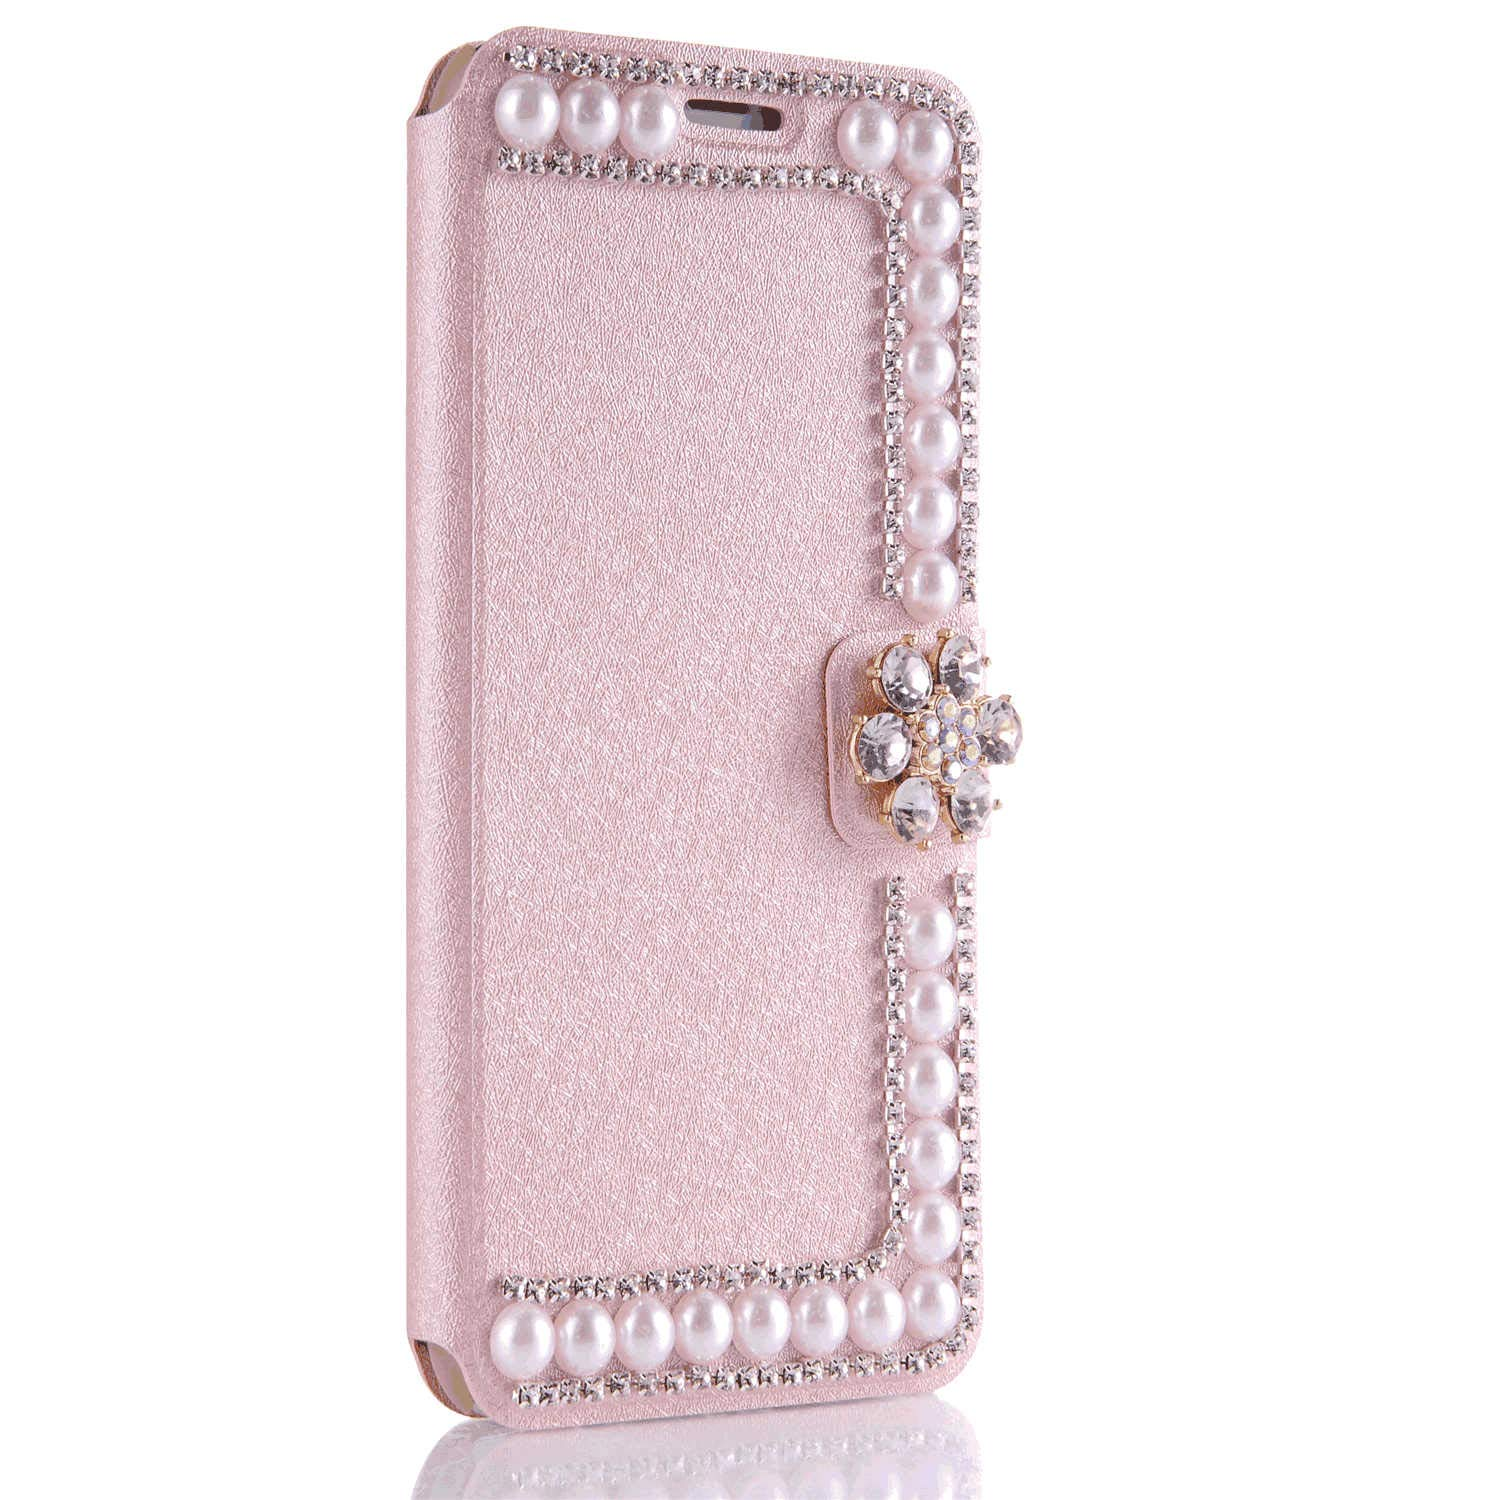 Leather Flip Case for Samsung Galaxy S10e Wallet Cover with Viewing Stand and Card Slots Bussiness Phone Case [with Free Waterproof Case]